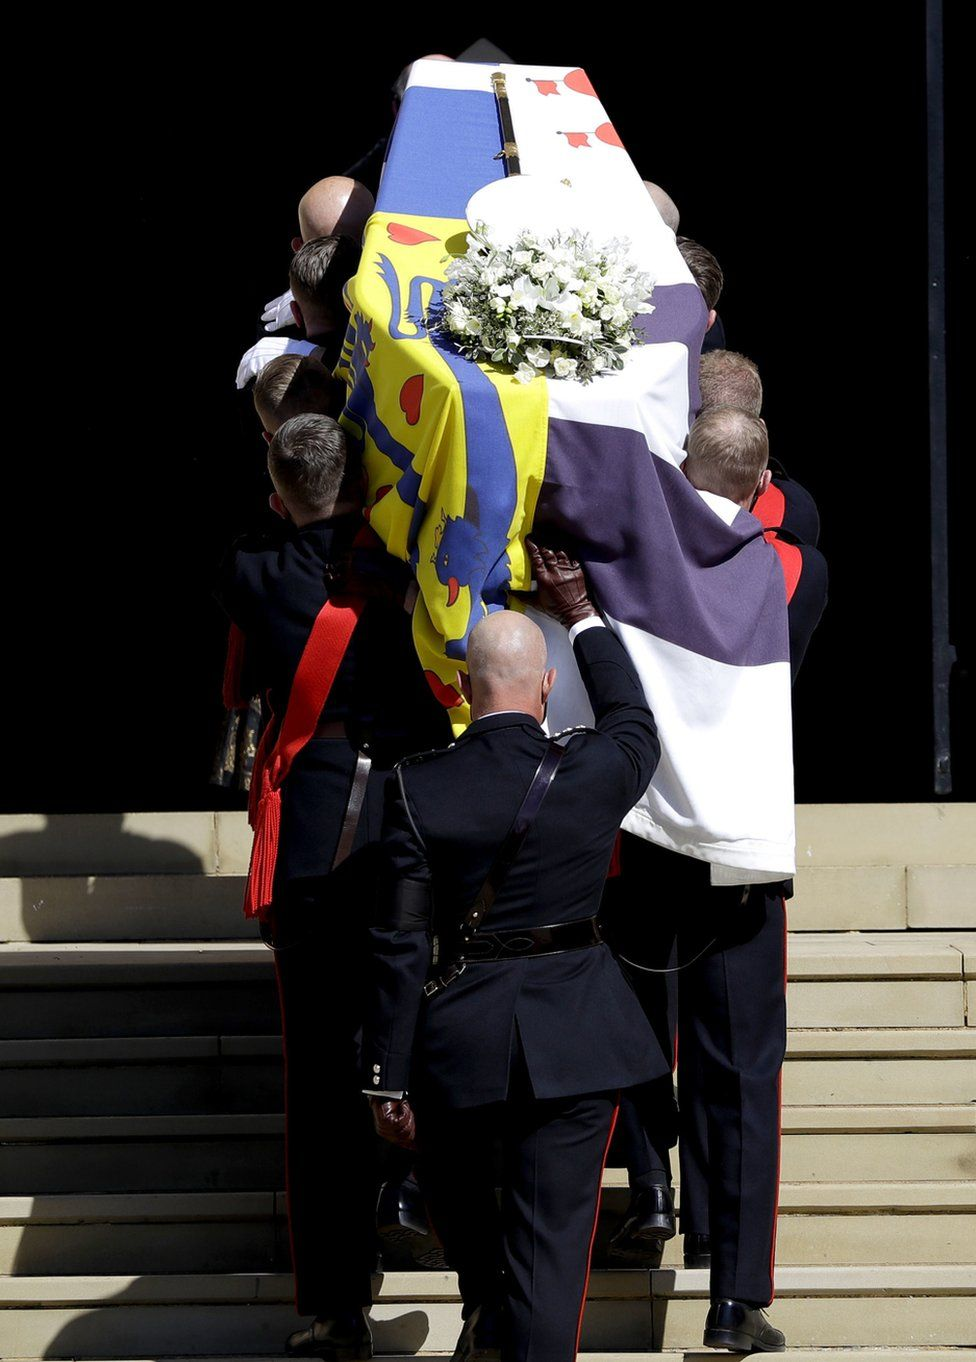 The Duke of Edinburgh's coffin, covered with His Royal Highness's Personal Standard is carried into St George's Chapel, Windsor Castle, Berkshire, during the funeral of the Duke of Edinburgh.